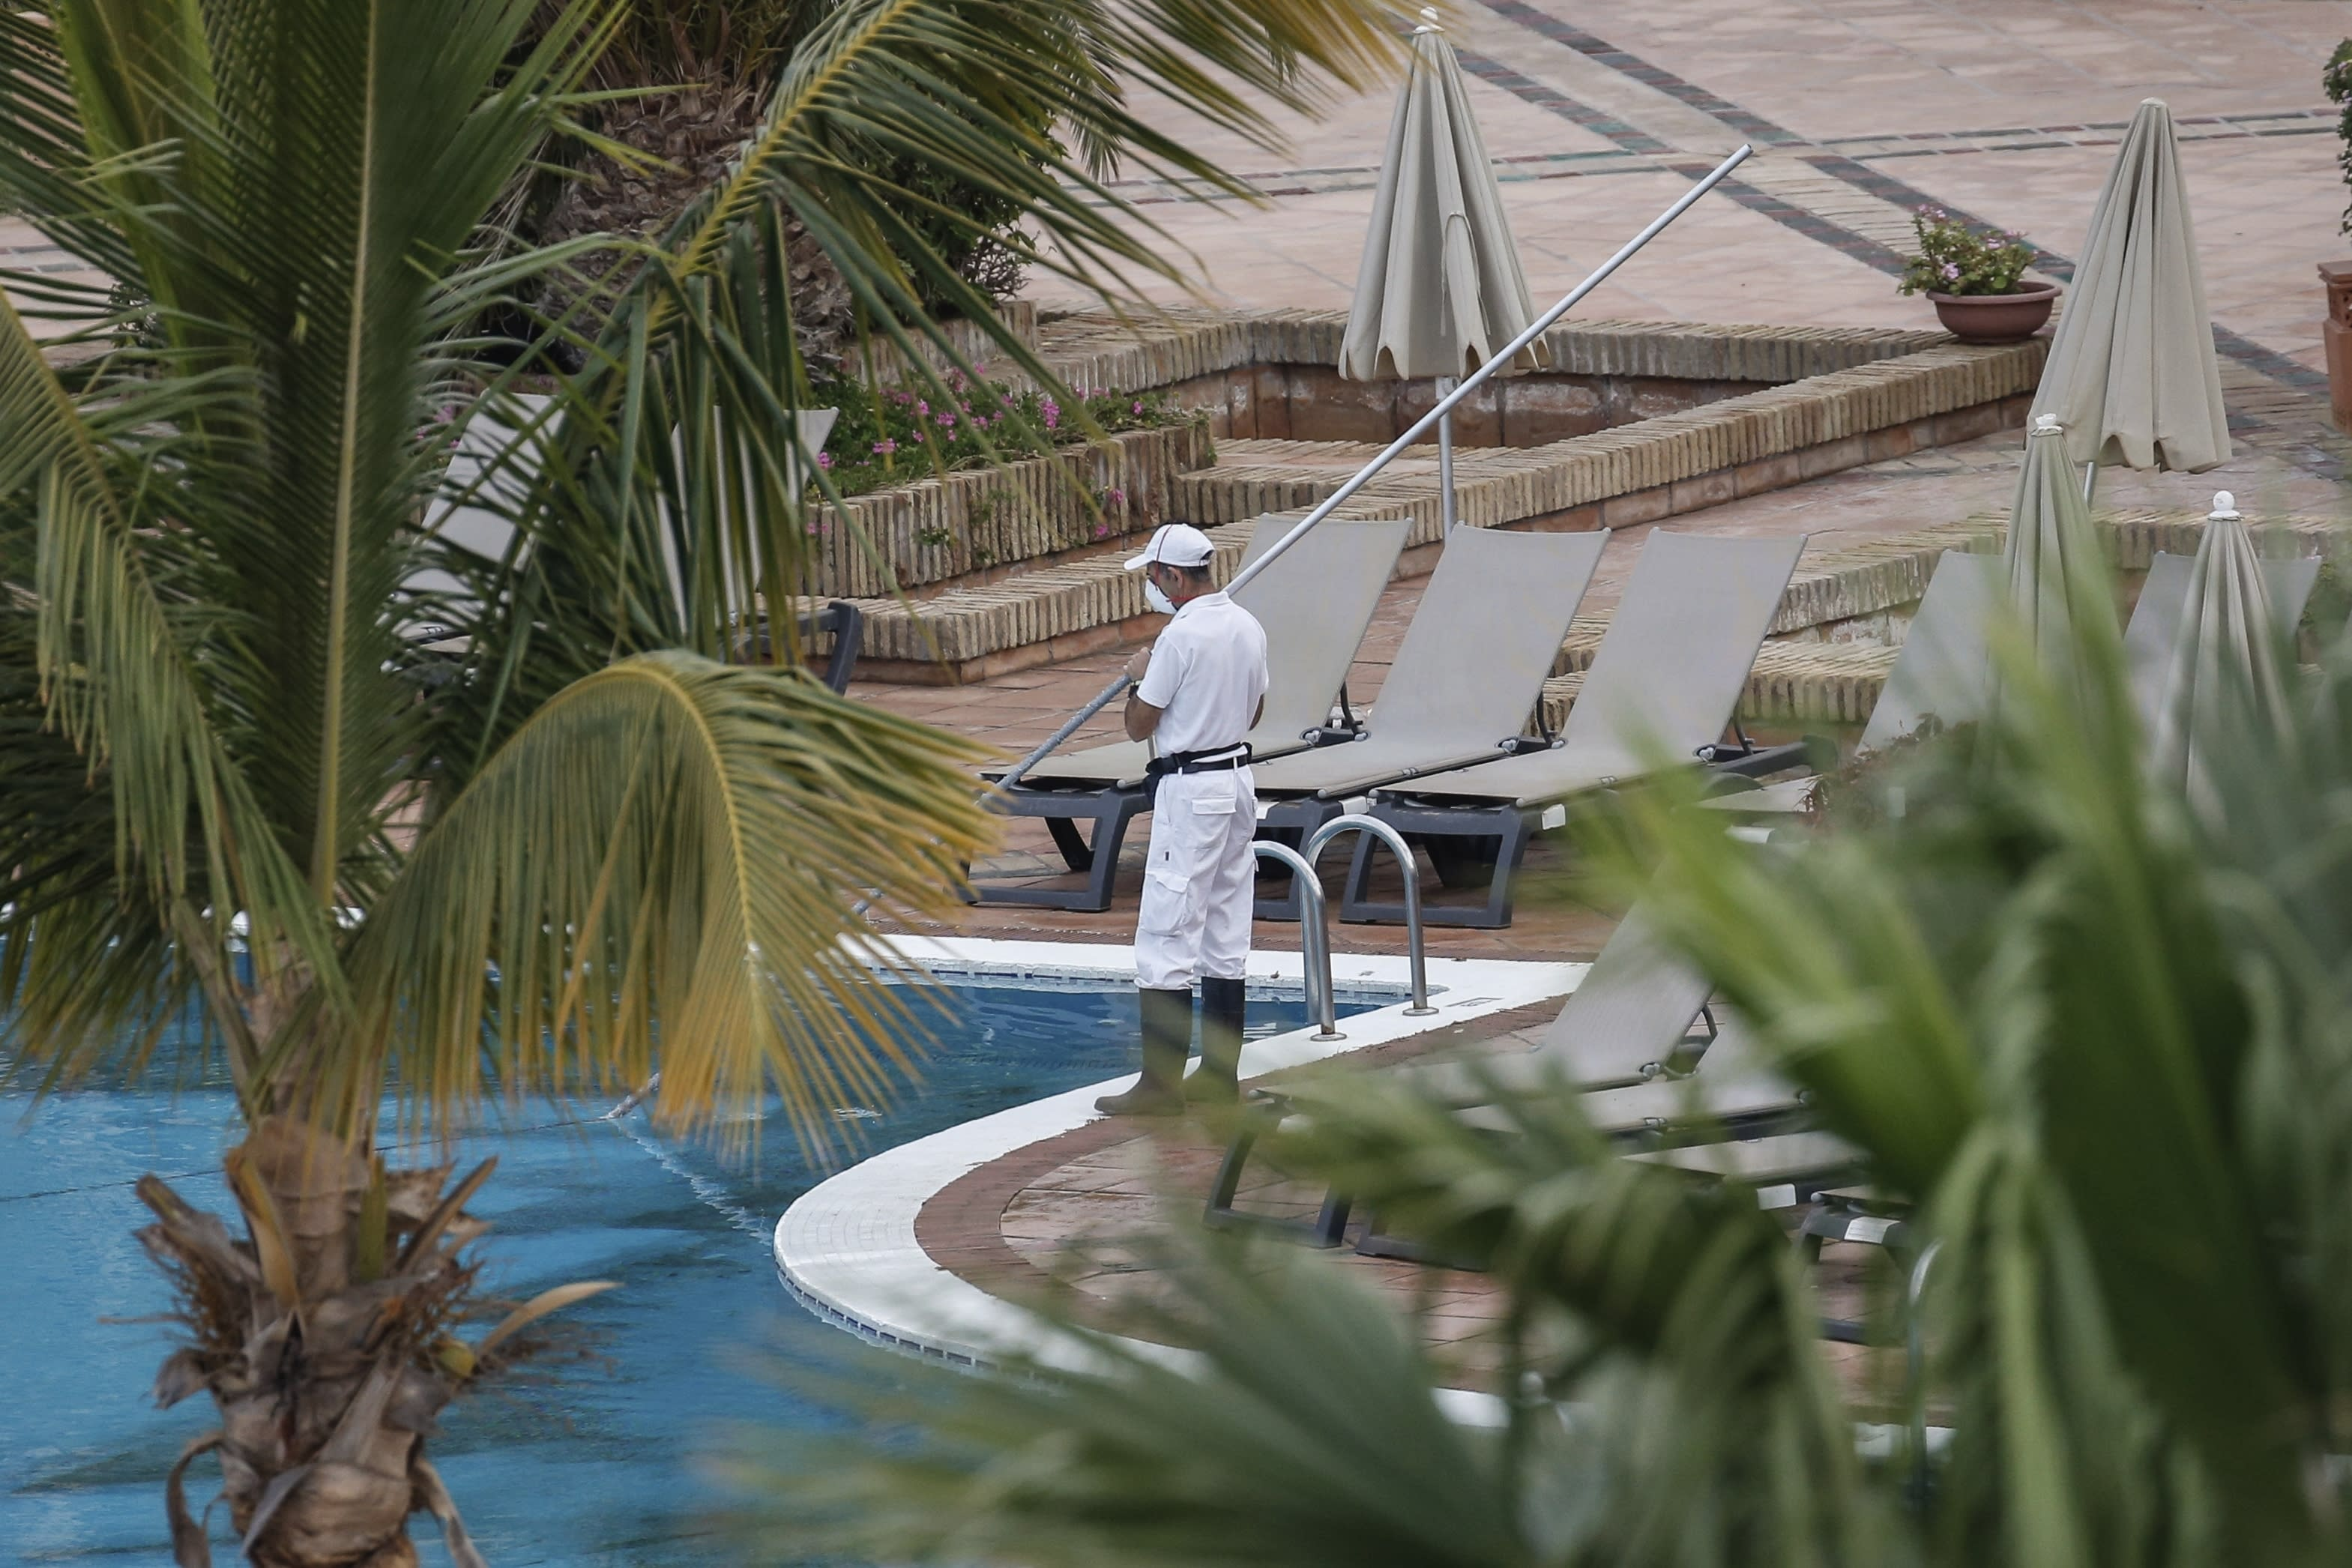 A staffer cleans the swimming pool of the H10 Costa Adeje Palace hotel in La Caleta, in the Canary Island of Tenerife, Spain, Thursday, Feb. 27, 2020. Spanish officials say a tourist hotel on the Canary Island of Tenerife has been placed in quarantine after an Italian doctor staying there tested positive for the COVID-19 virus and Spanish news media says some 1,000 tourists staying at the complex are not allowed to leave. (AP Photo/Joan Mateu)